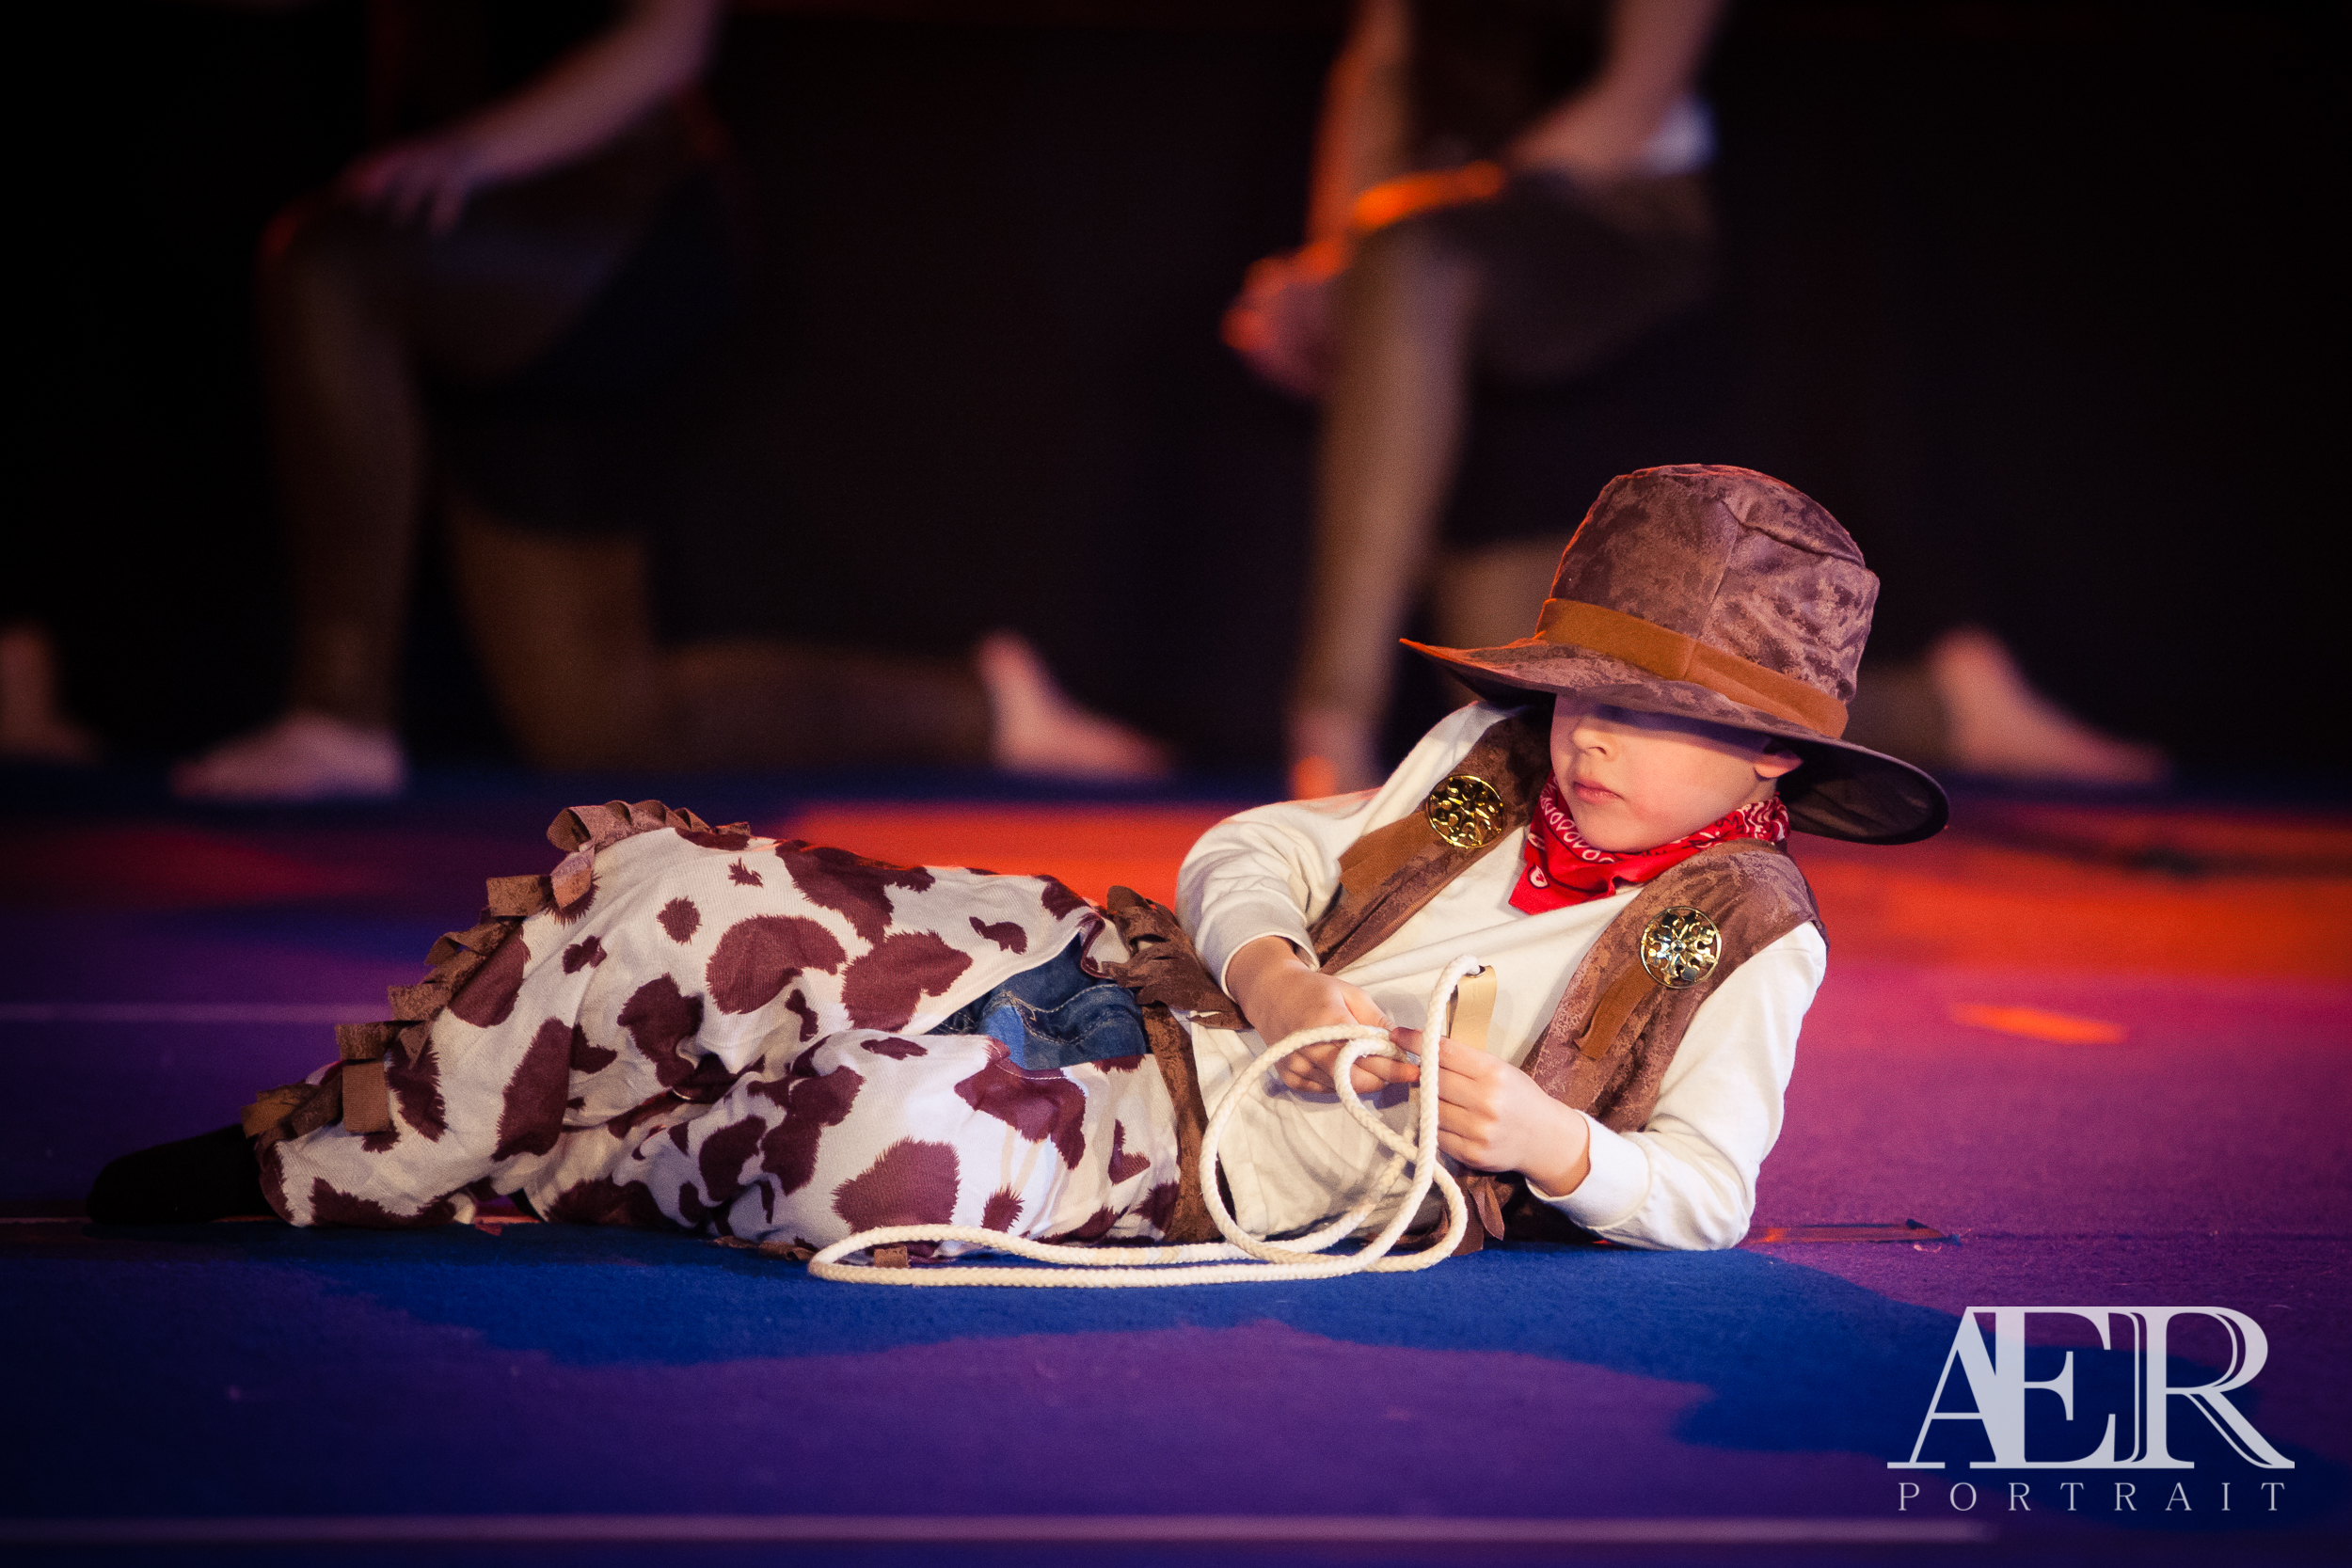 Louisville Performing Arts Photography - Turners Circus - AER Portrait 23